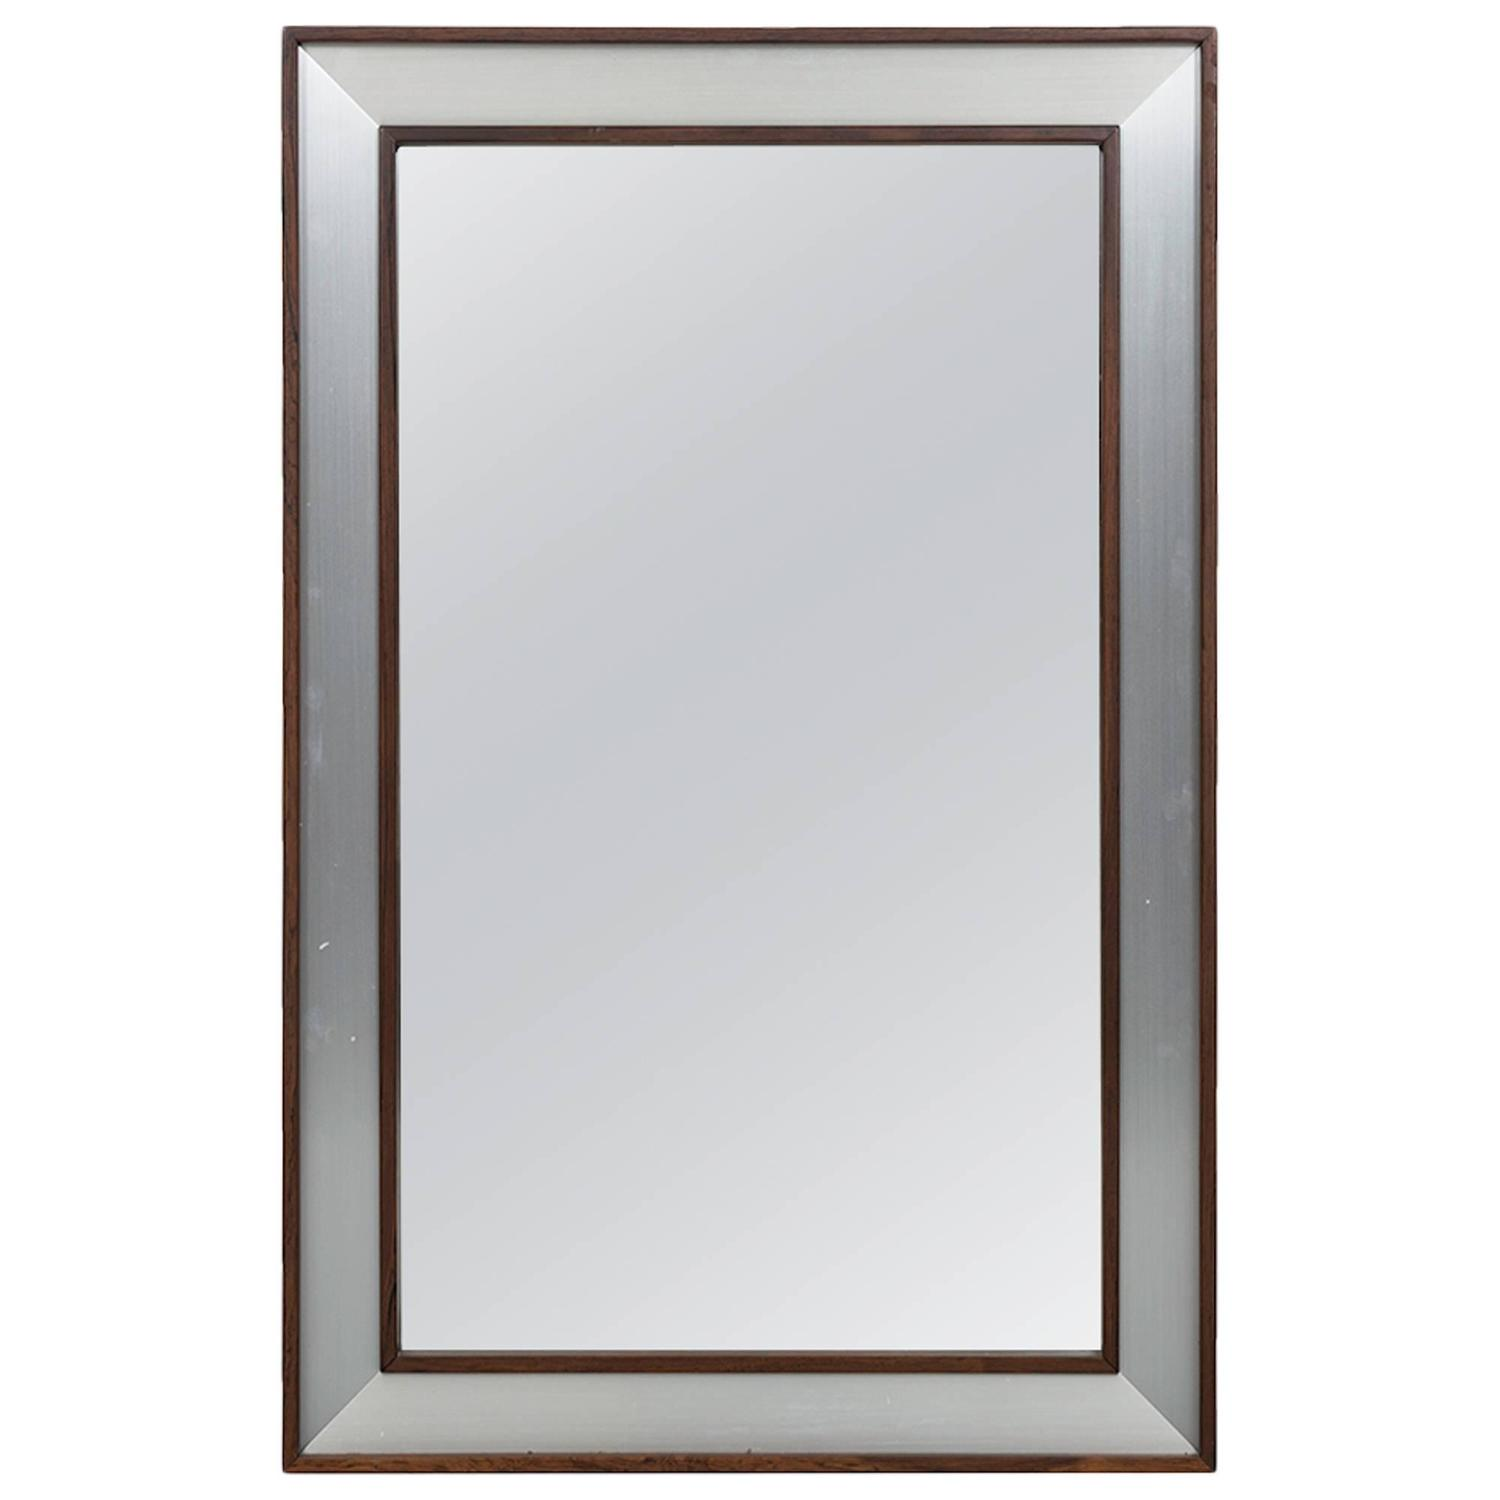 Aluminum Frame Wall : Large rosewood mirror with aluminium frame for sale at stdibs